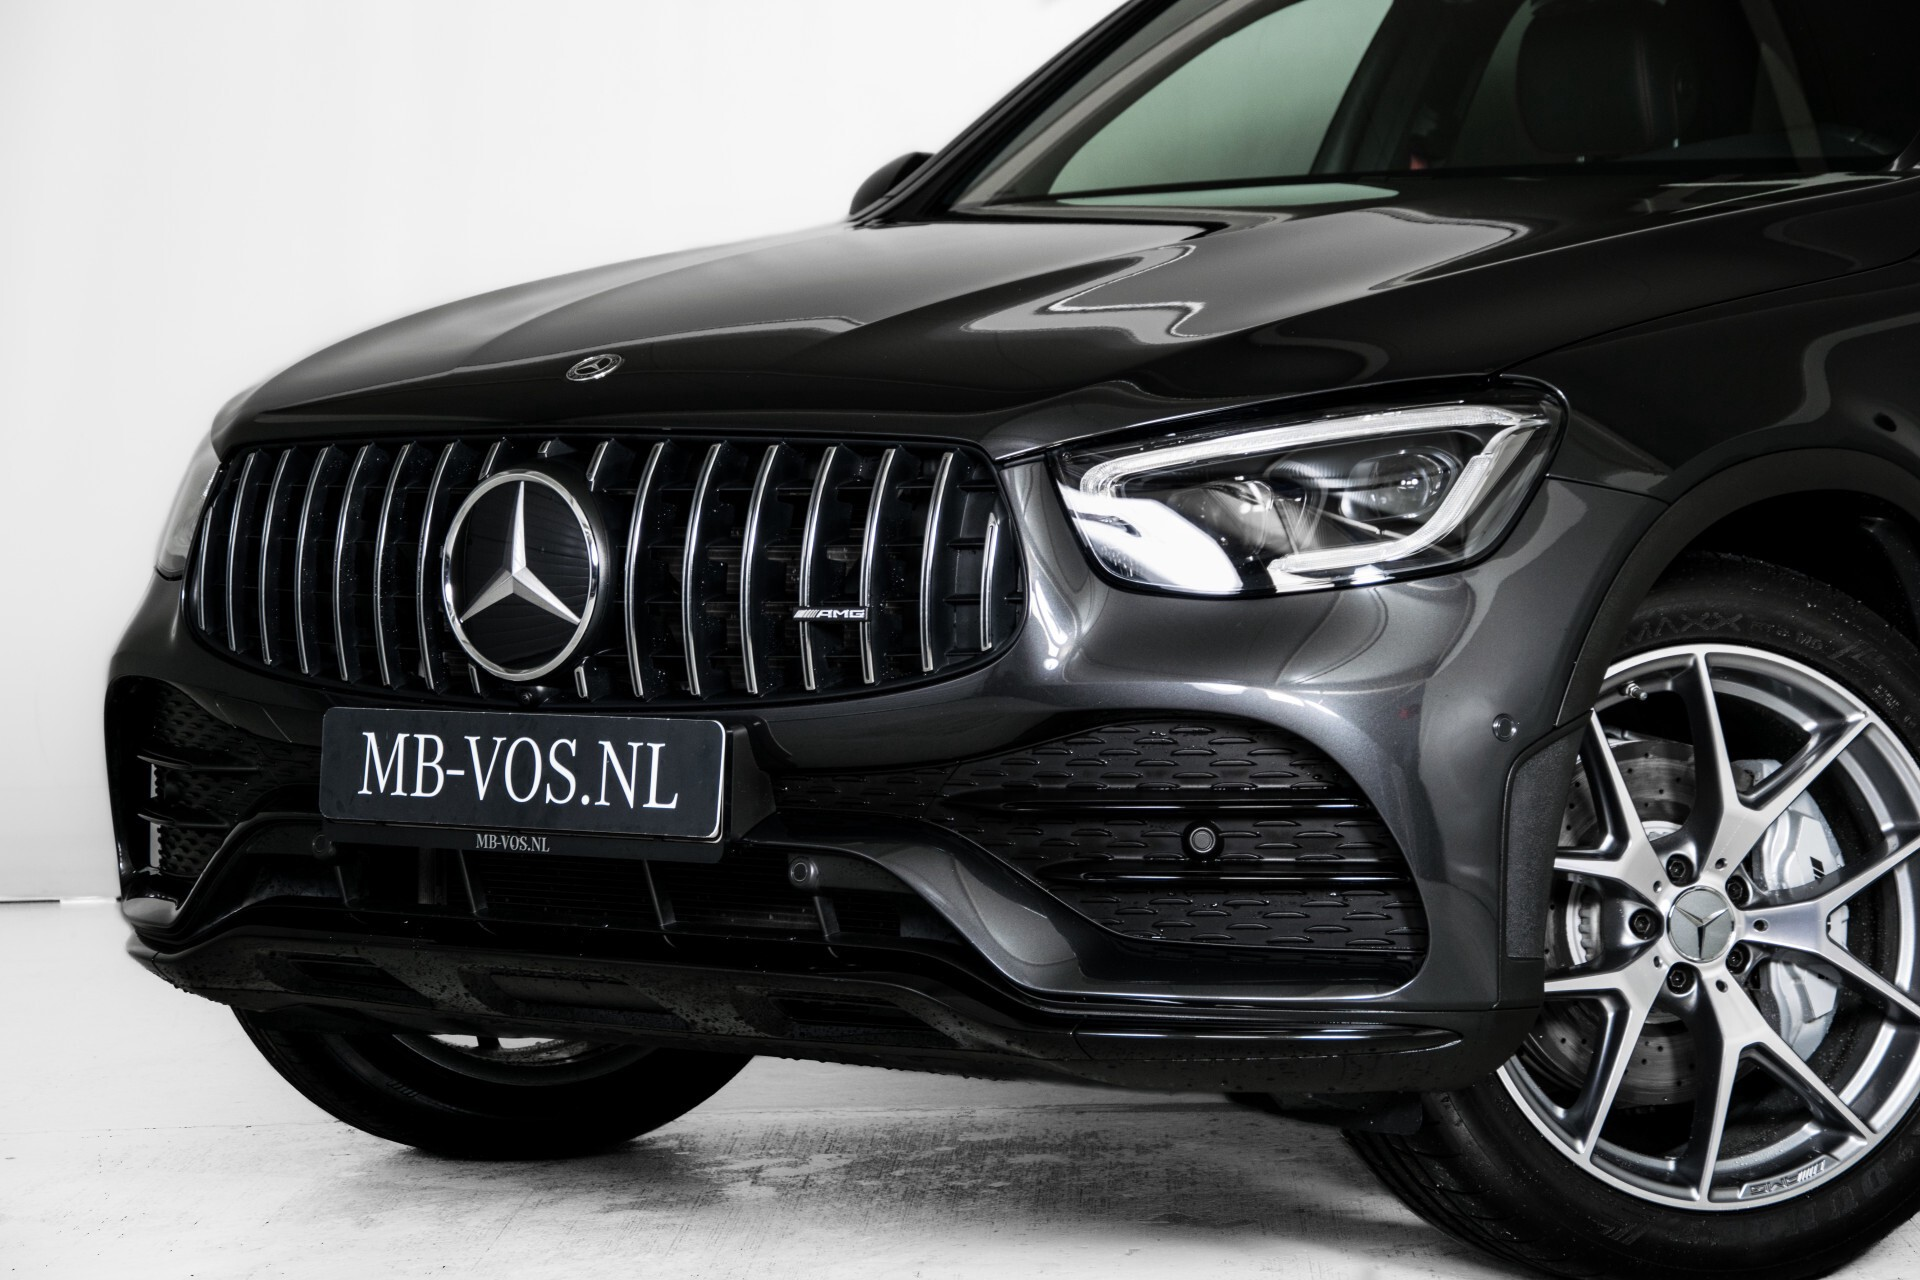 Mercedes-Benz GLC 43 AMG 4-M Night Pano/Sportuitlaat/Keyless/Distronic/Widescreen/MBUX/Trekhaak Aut9 Foto 73